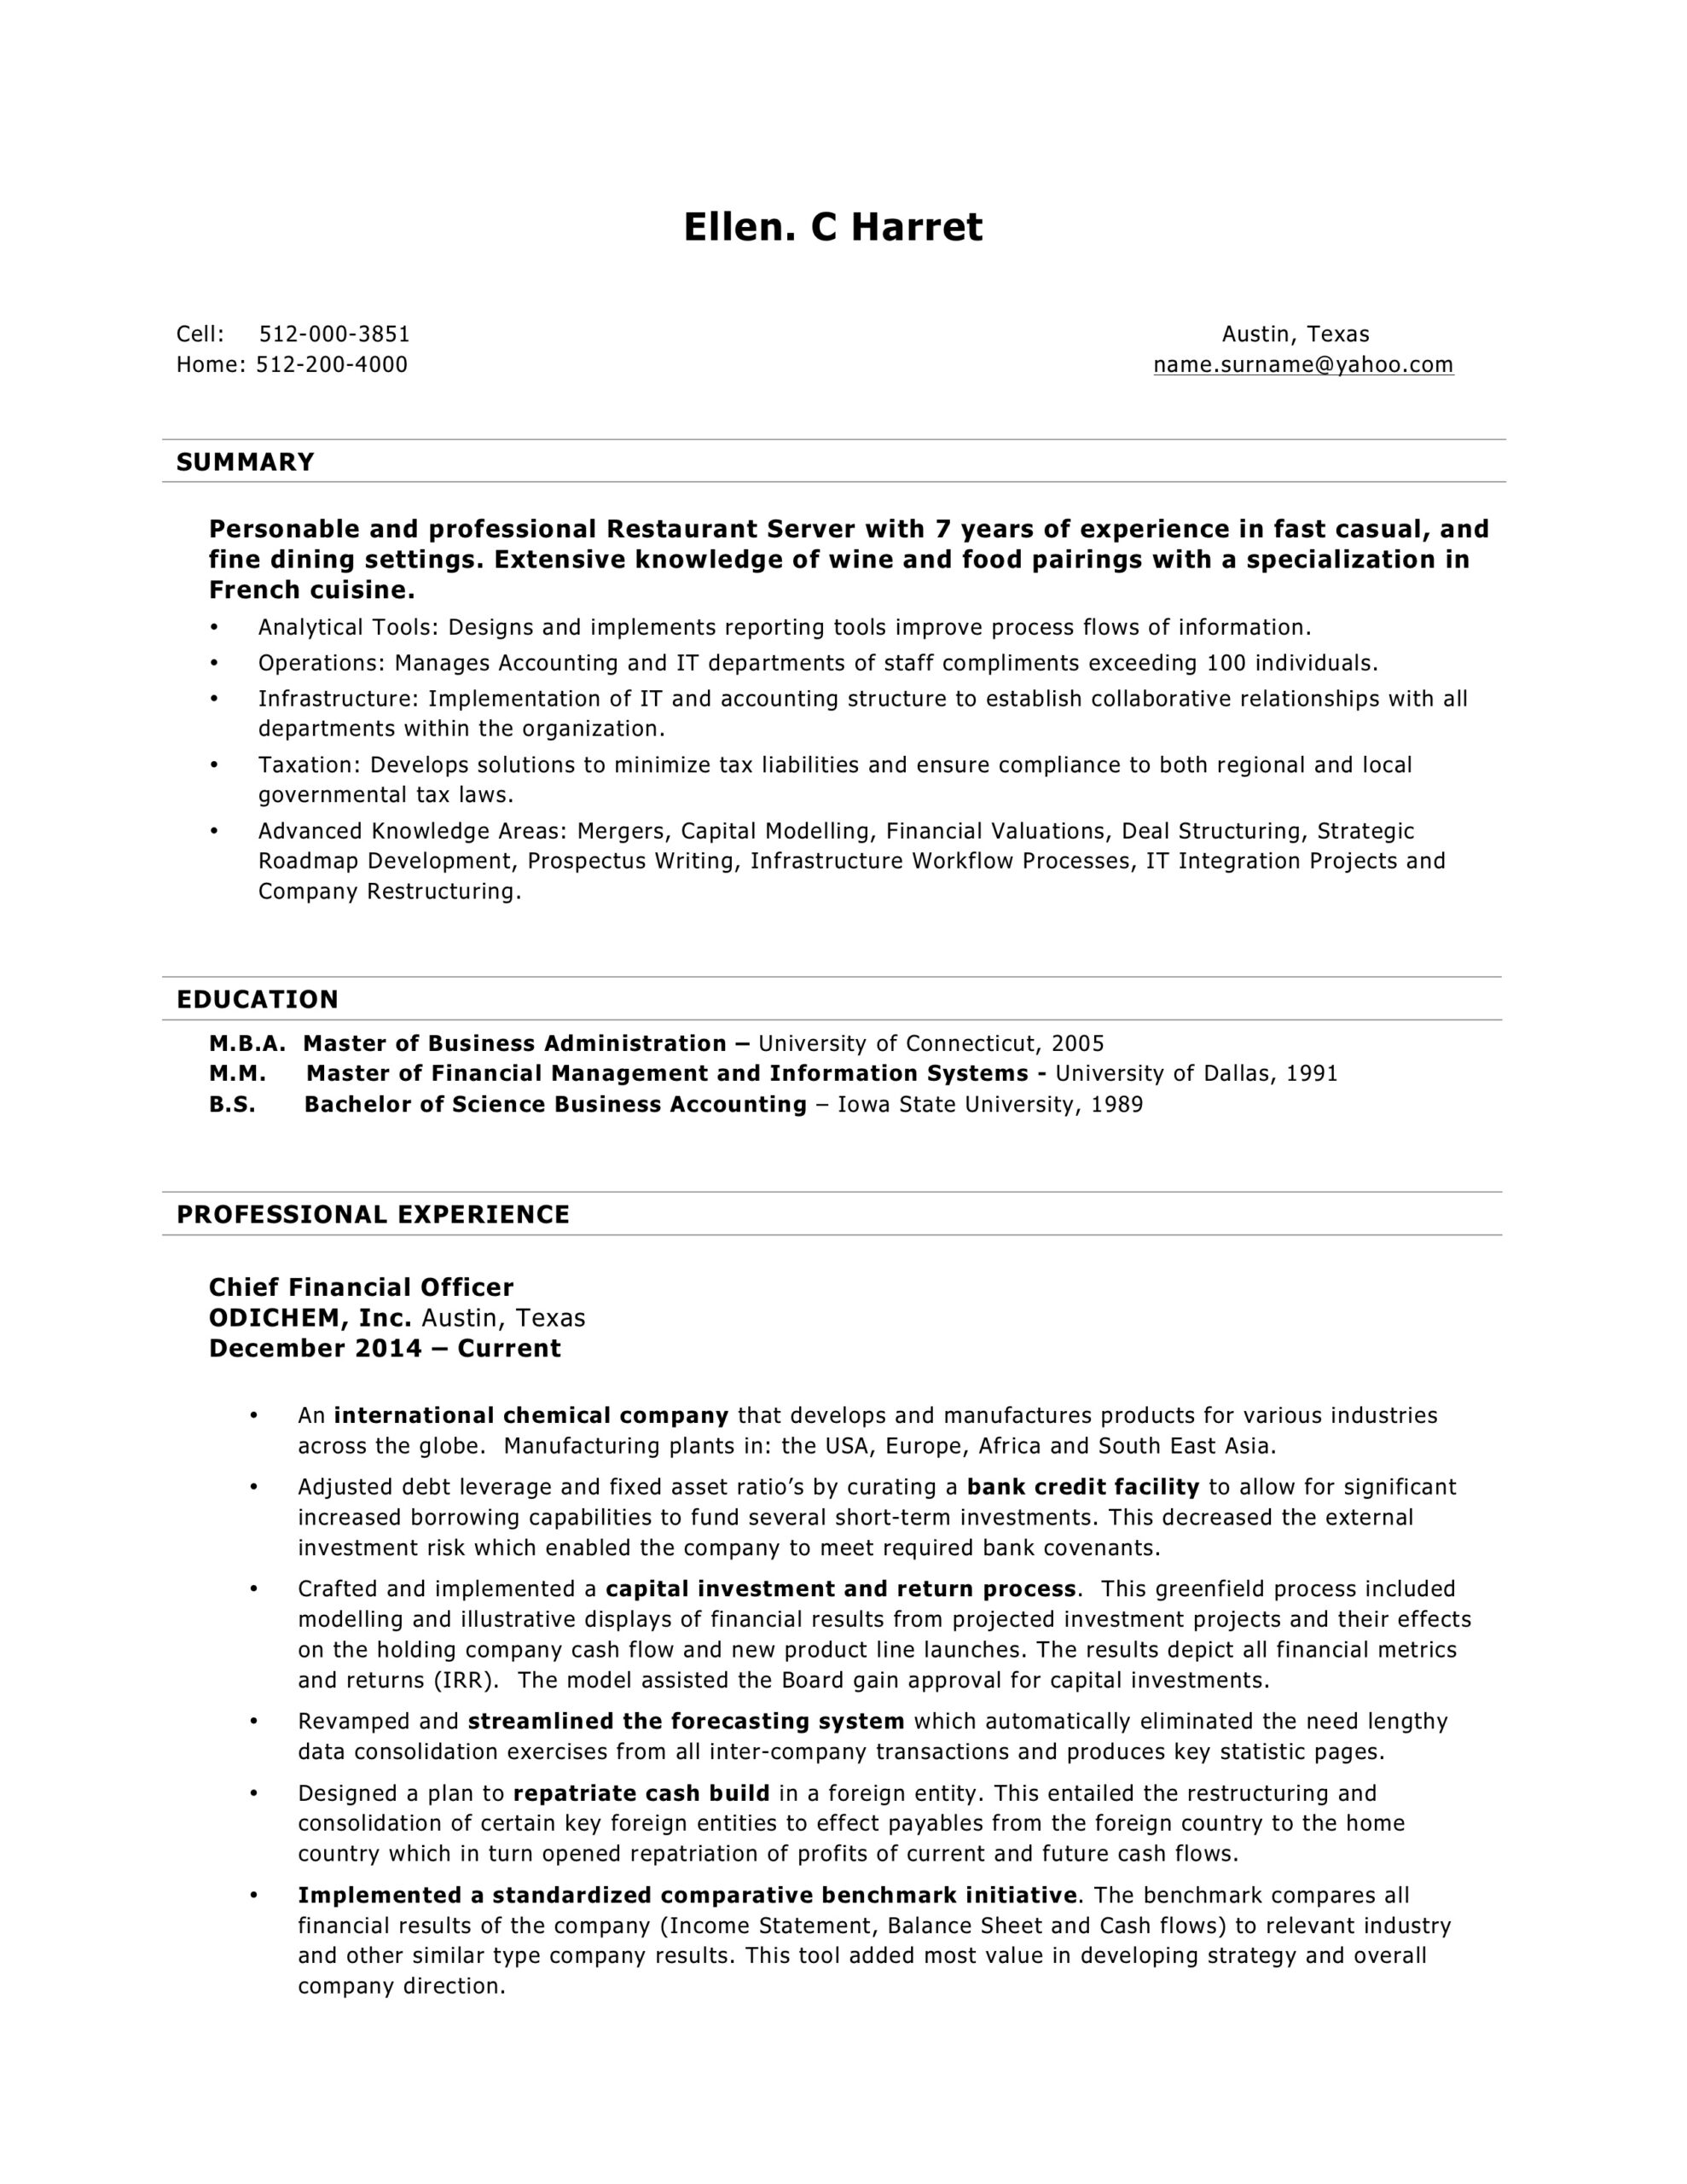 free word resume templates in ms basic examples server template bookkeeper example Resume Basic Resume Examples Word